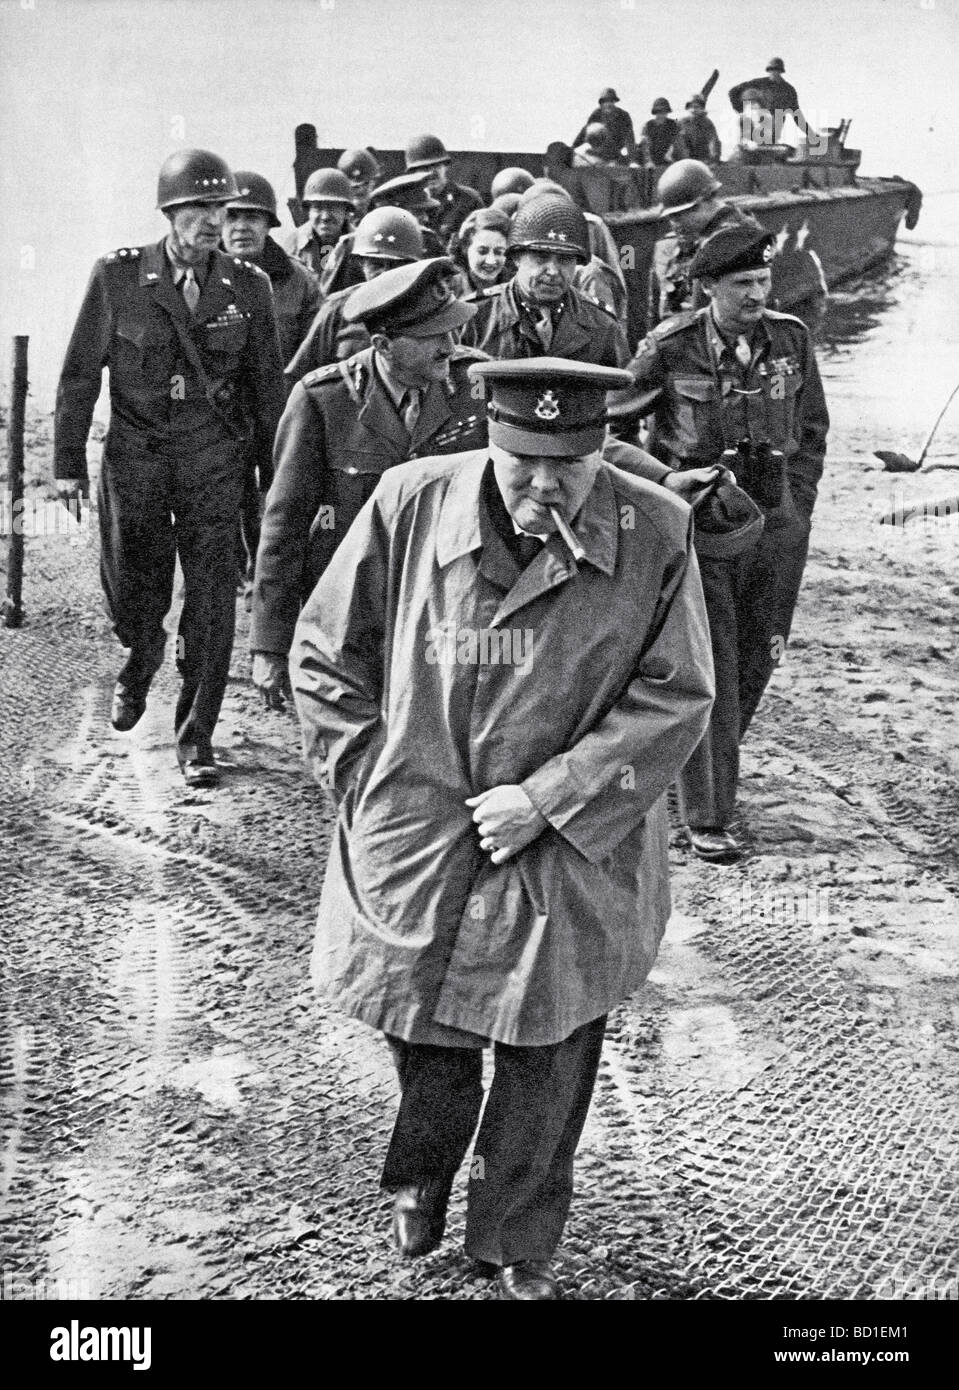 WINSTON CHURCHILL crosses the Rhine on 25 March 1945 with US and British generals - see Description below - Stock Image